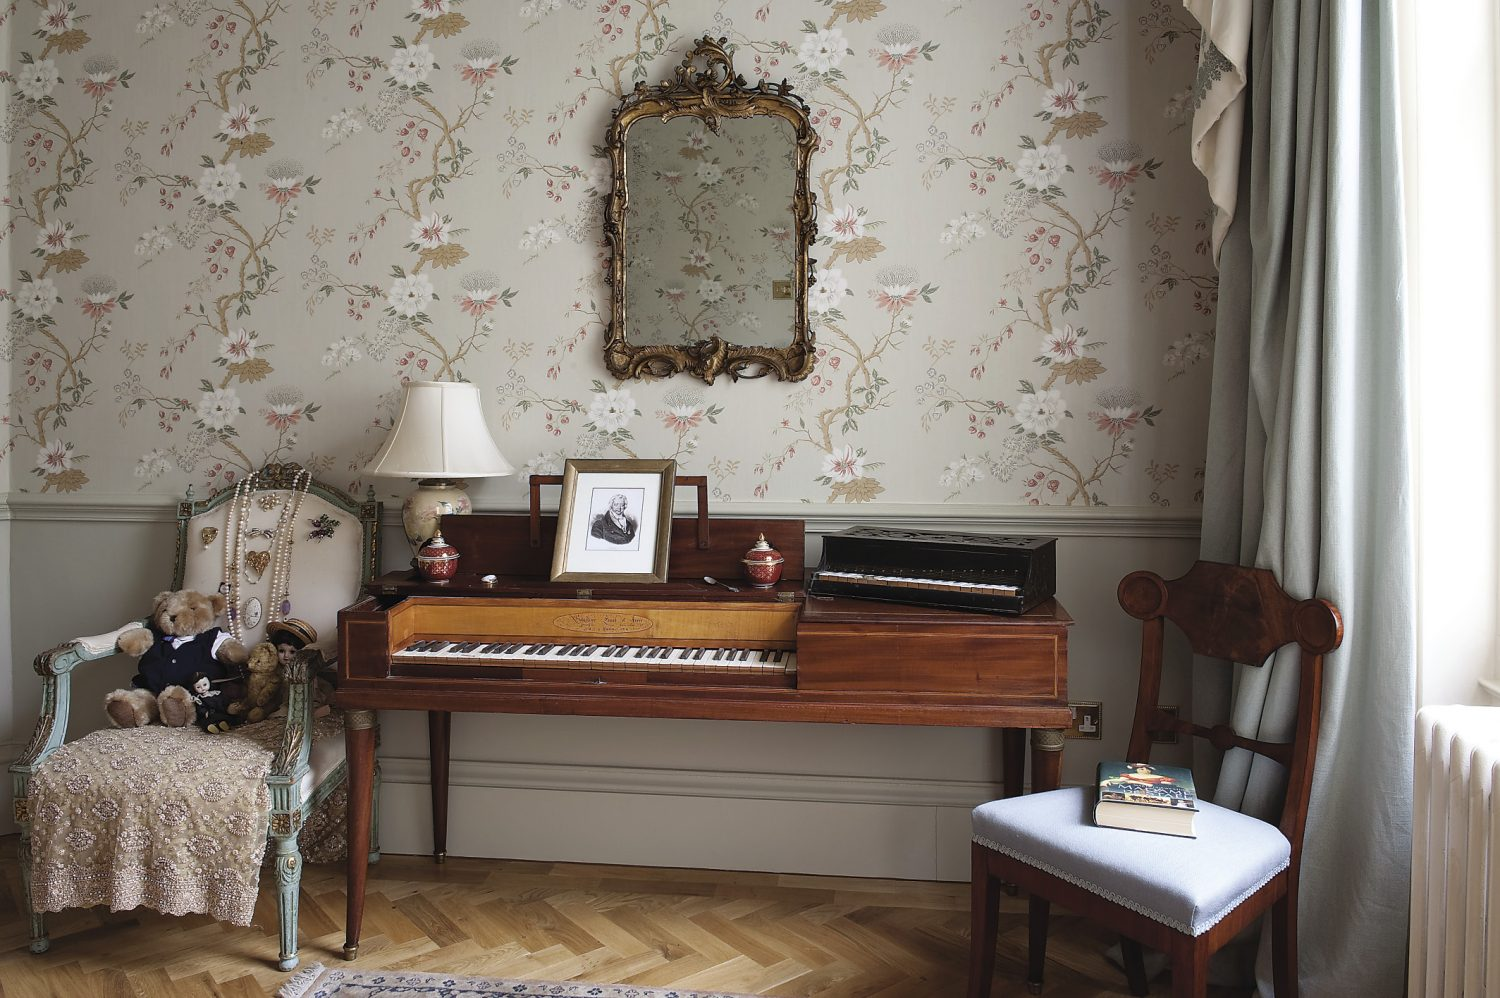 Theodora's office, complete with period paino